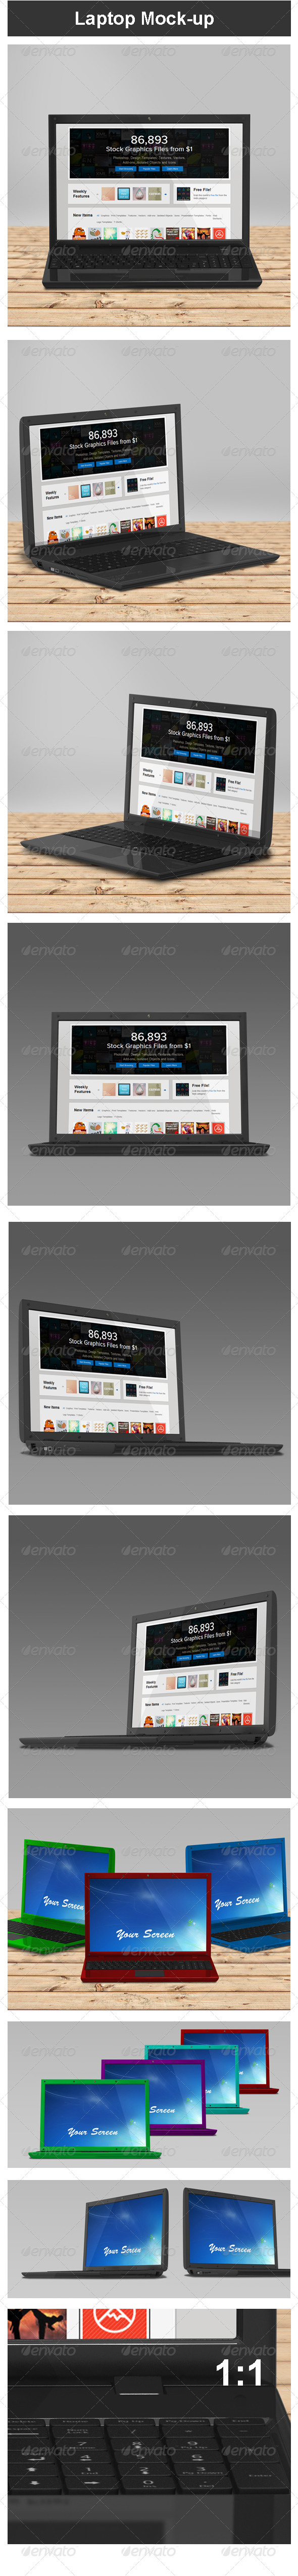 GraphicRiver Laptop Mock-up 3746305